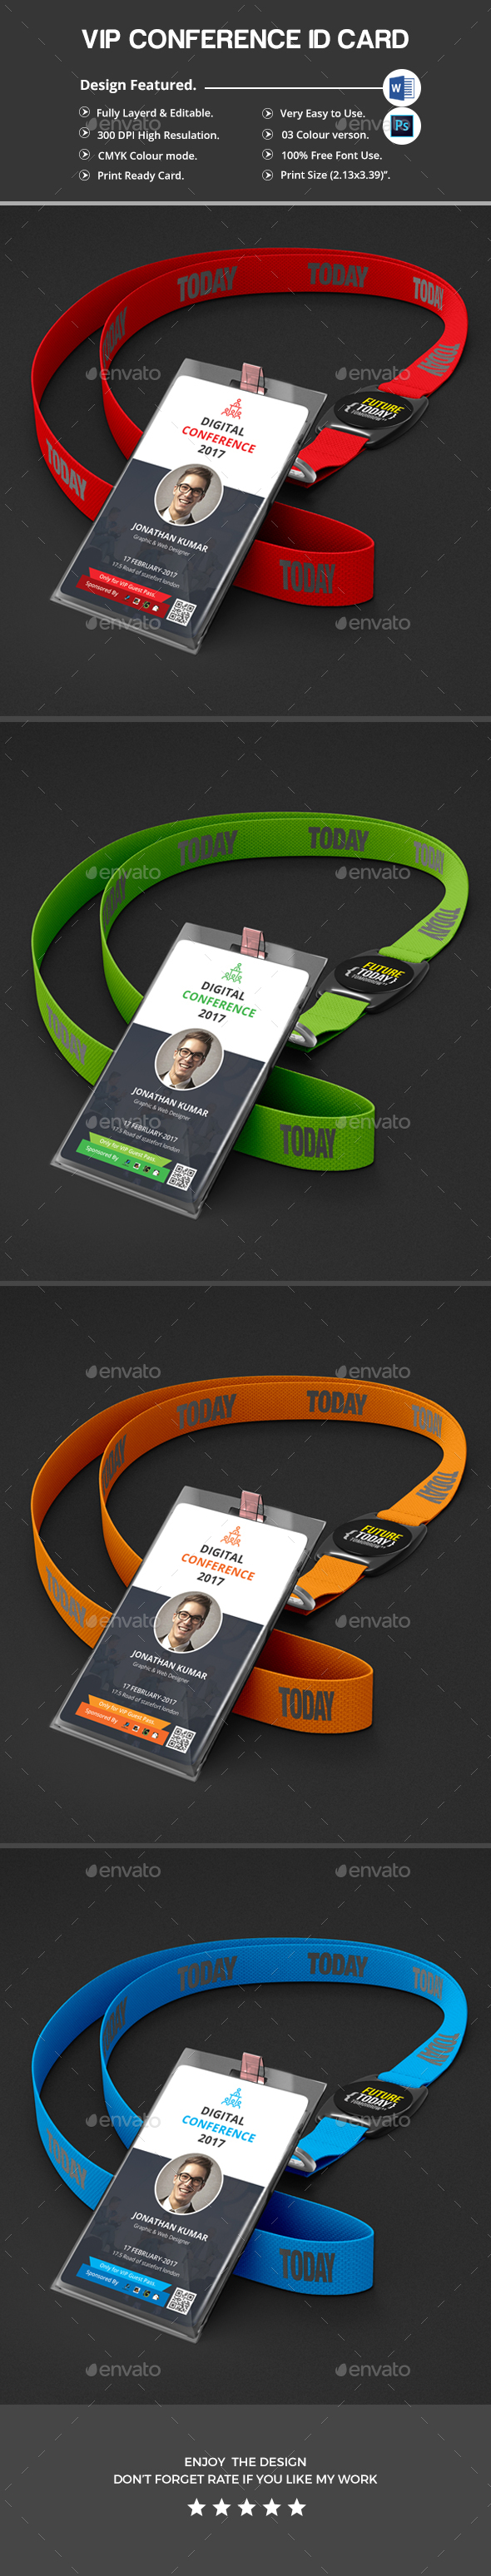 Conference VIP Pass ID Card - Miscellaneous Print Templates